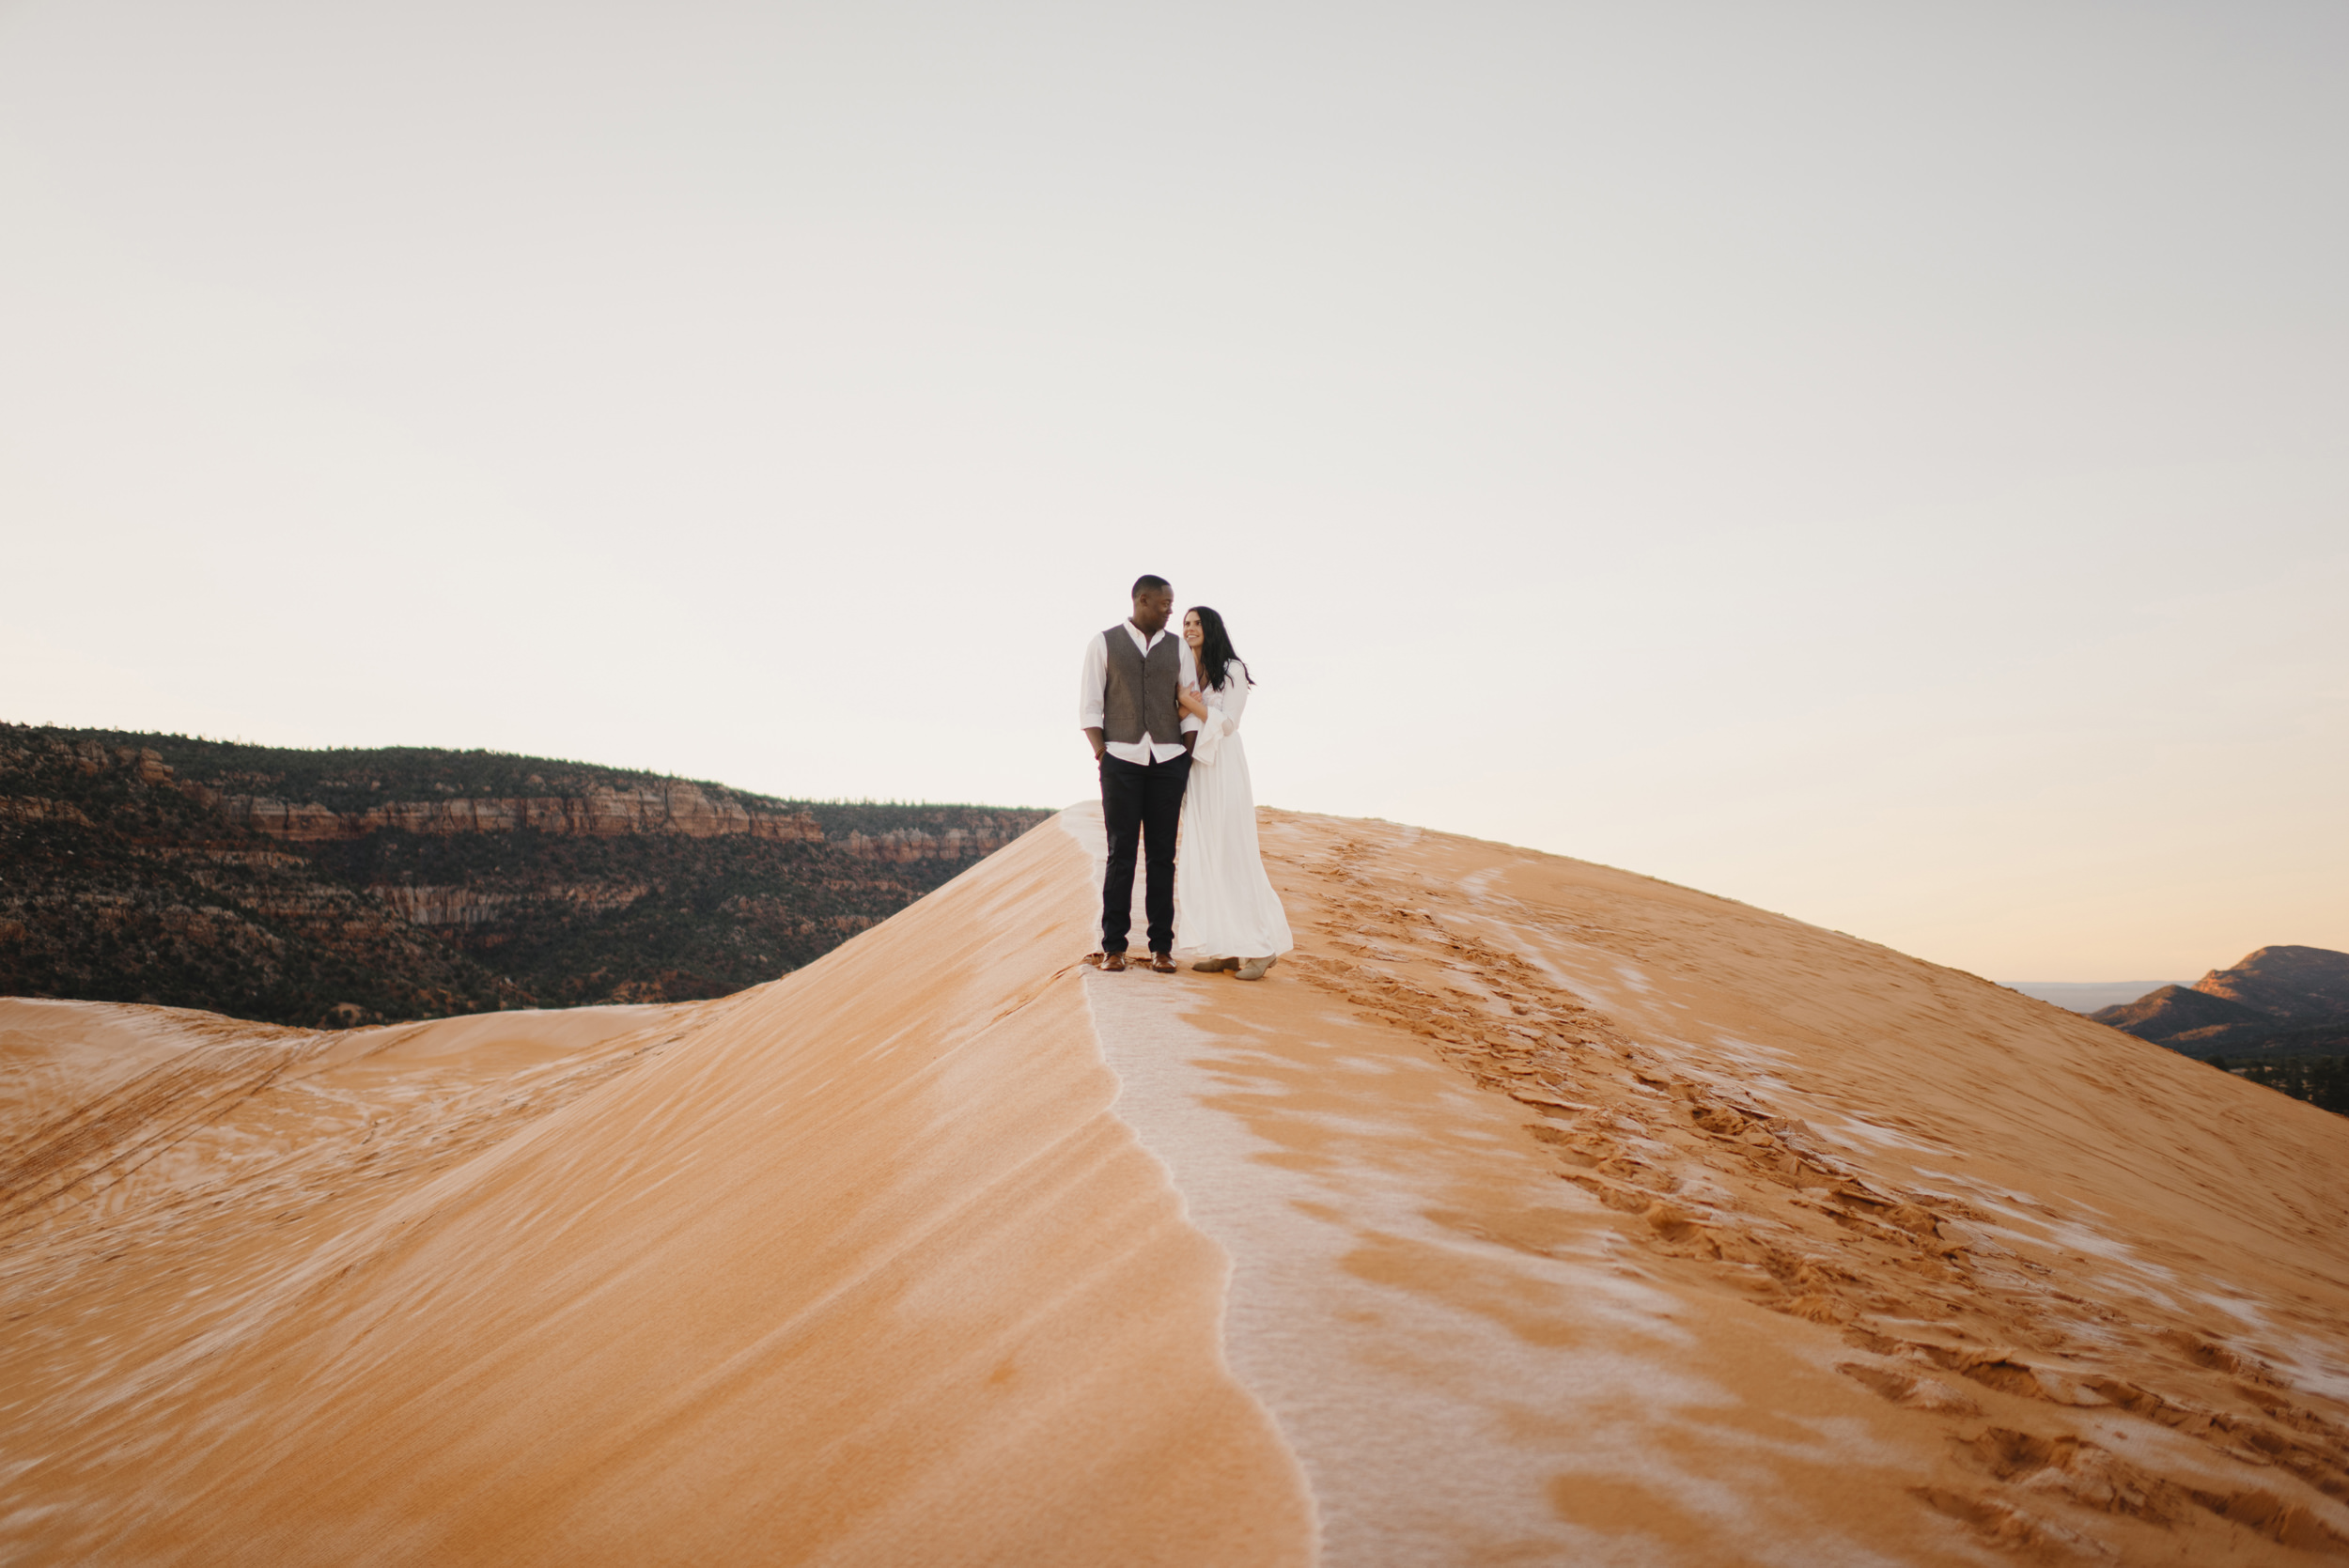 A couple stands side by side during their Coral Pink Sand Dunes adventure engagement photography session by Utah Destination Elopement Photographer Colby and Jess